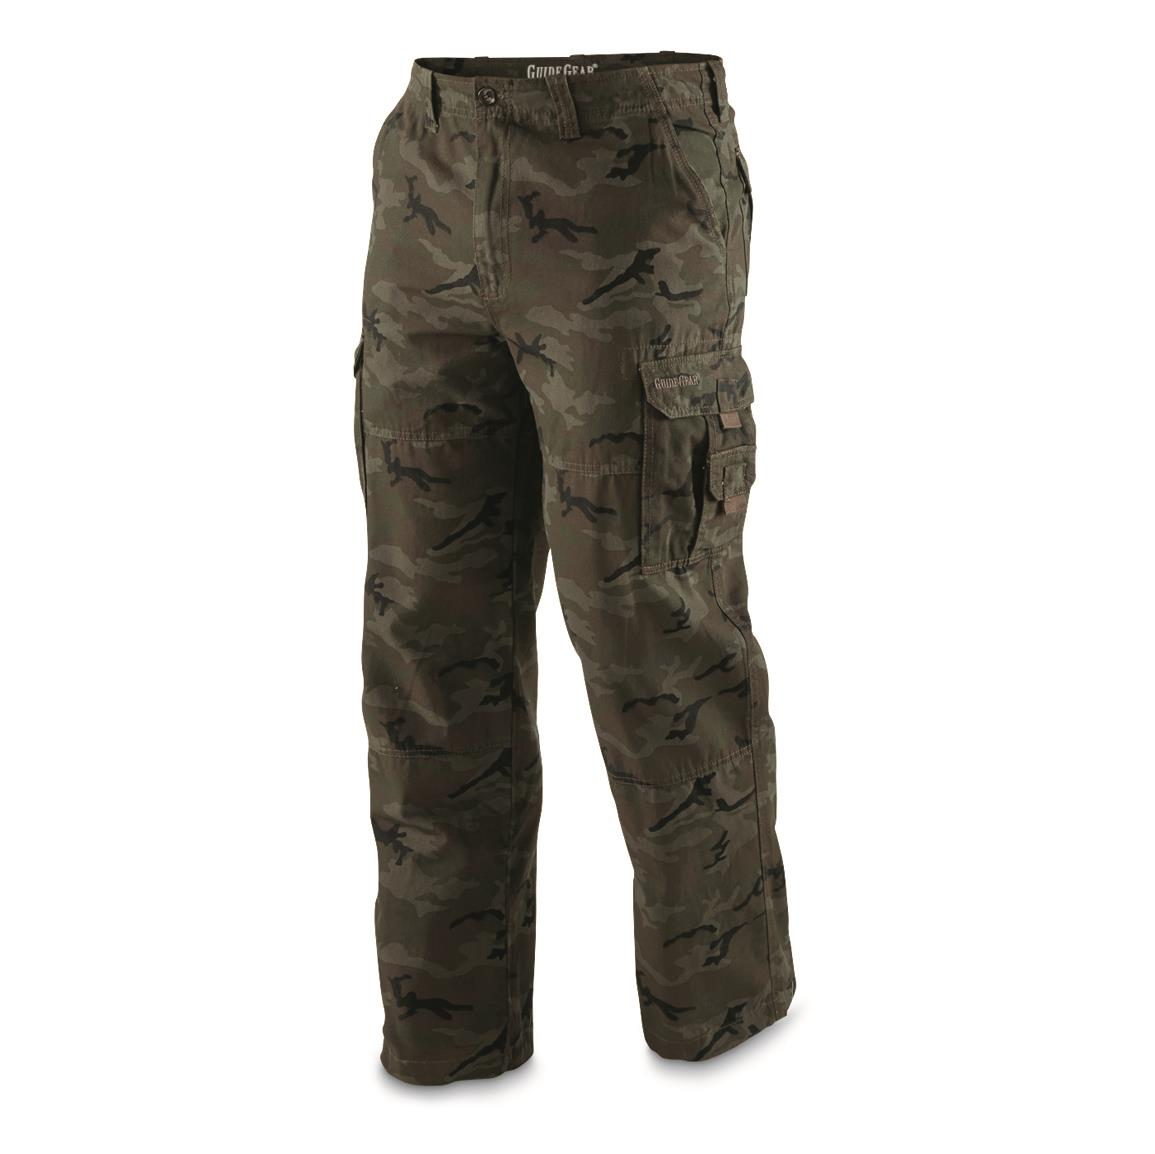 Guide Gear Men's Outdoor Cargo Pants, Woodland Camo